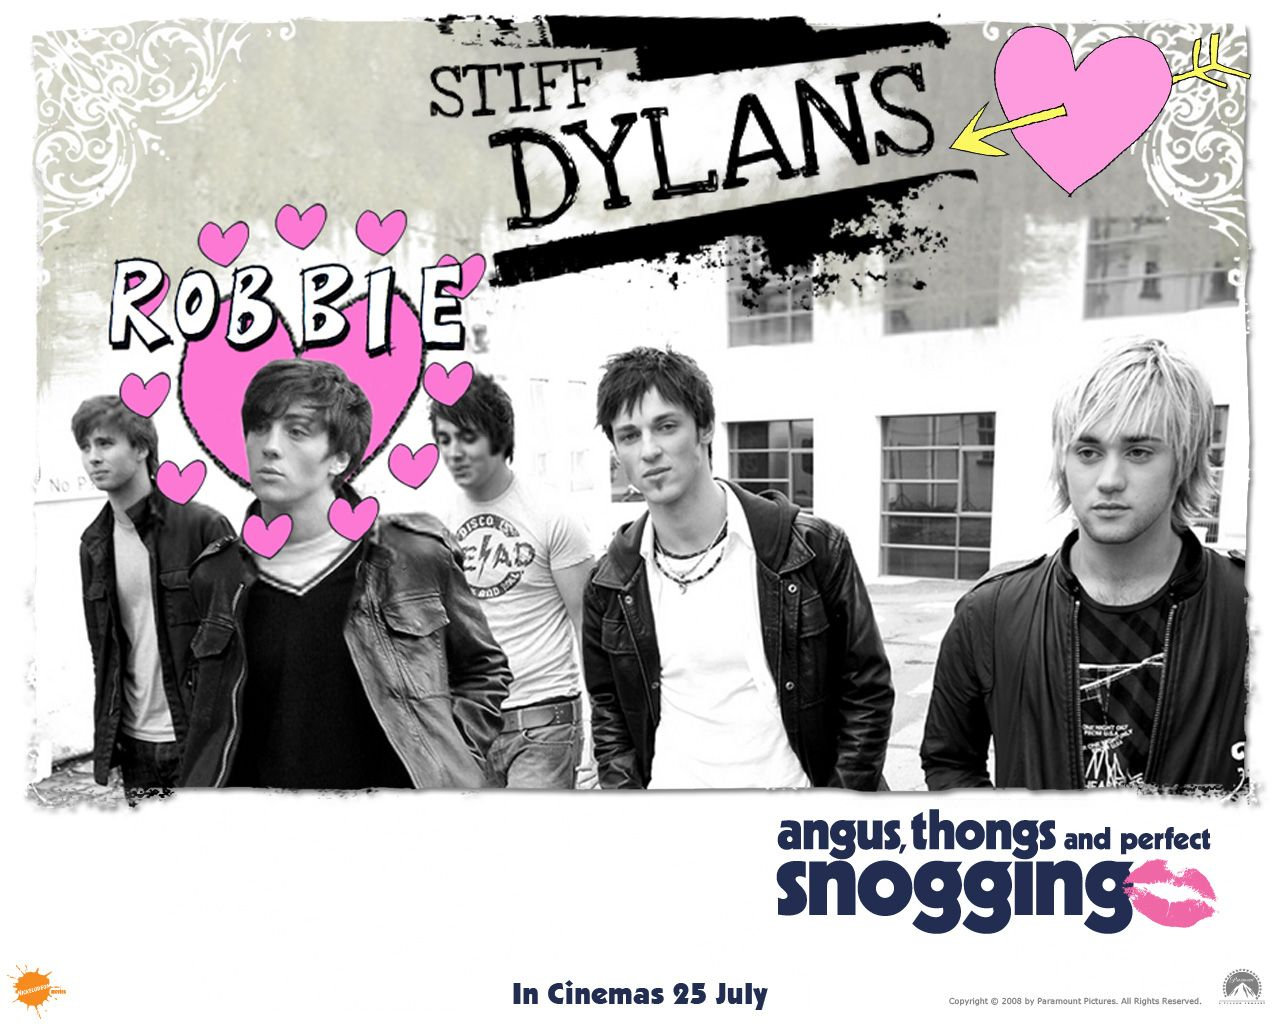 Angus Thongs And Perfect Snogging Cast angus thongs and perfect snogging | angus thongs and perfect